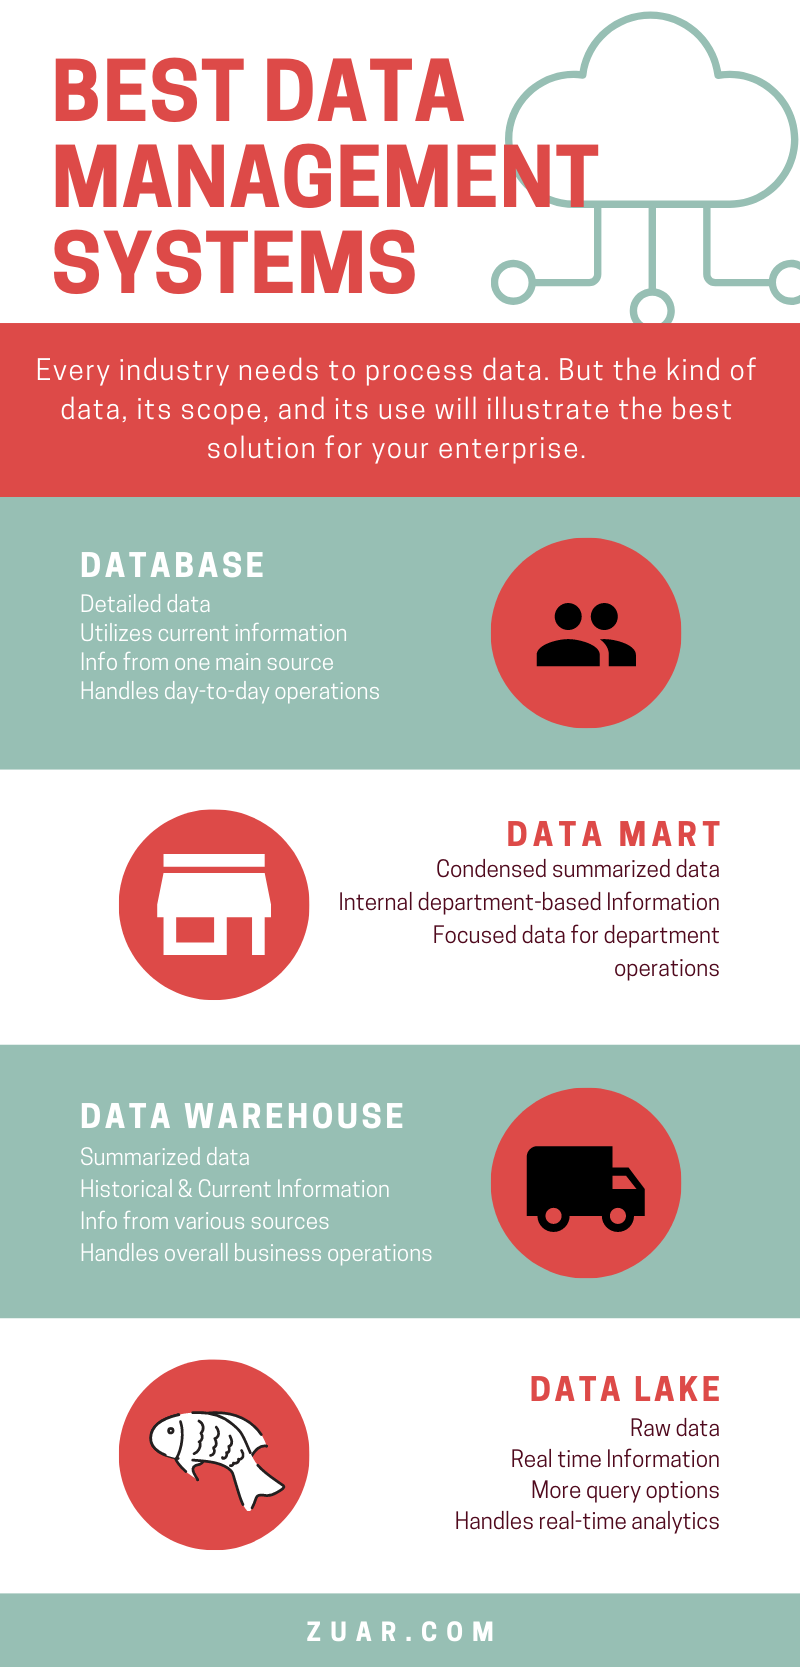 Best Data Management Systems Infographic